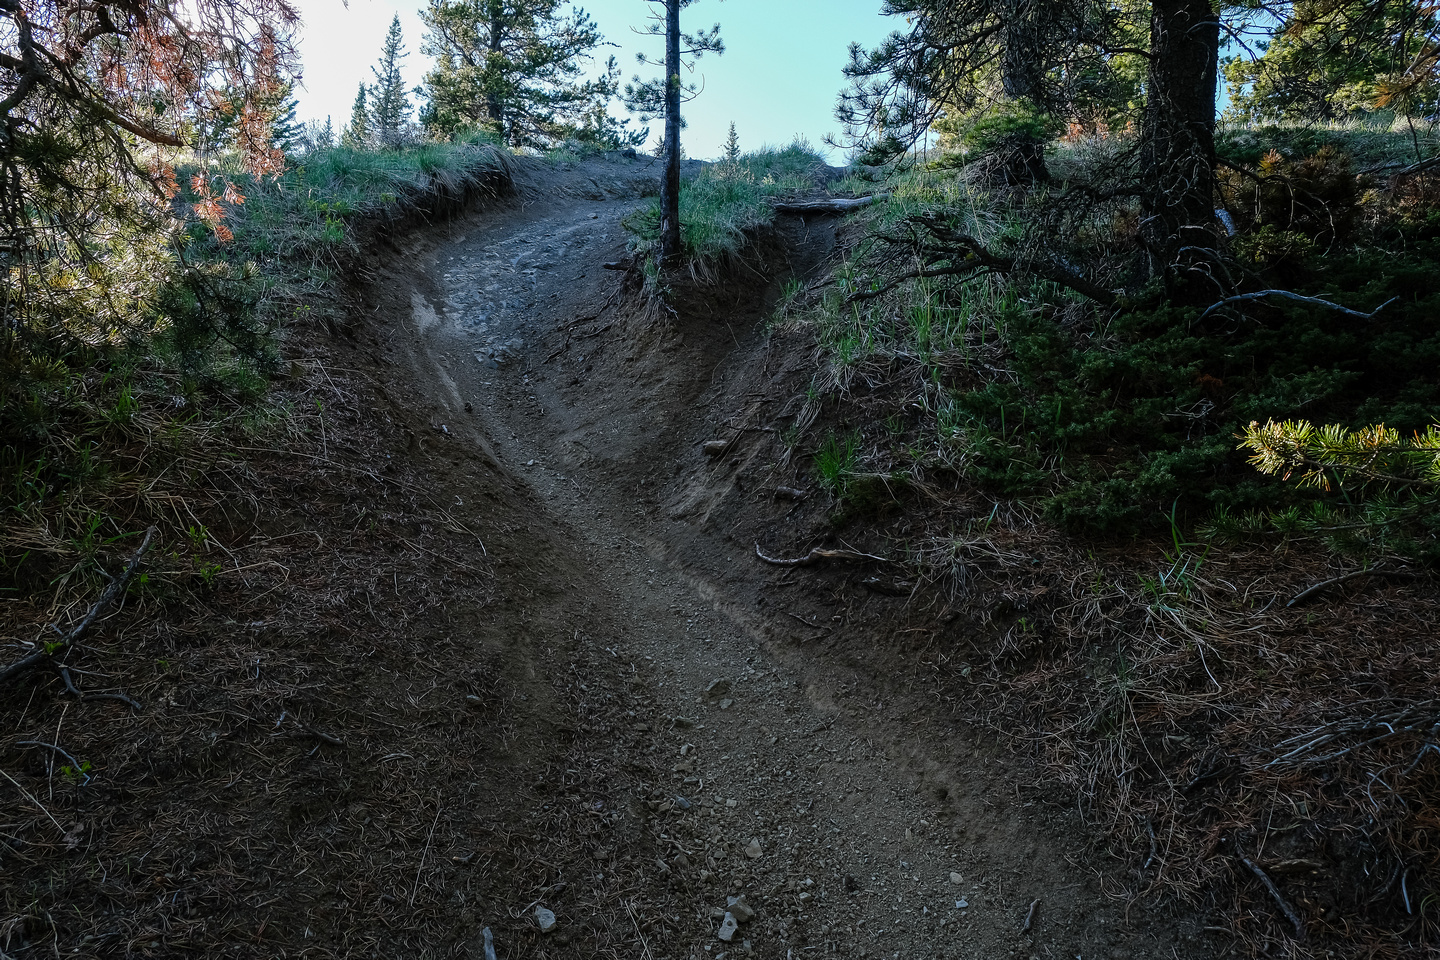 Returning to Quirk Ridge North on the dirt bike track.